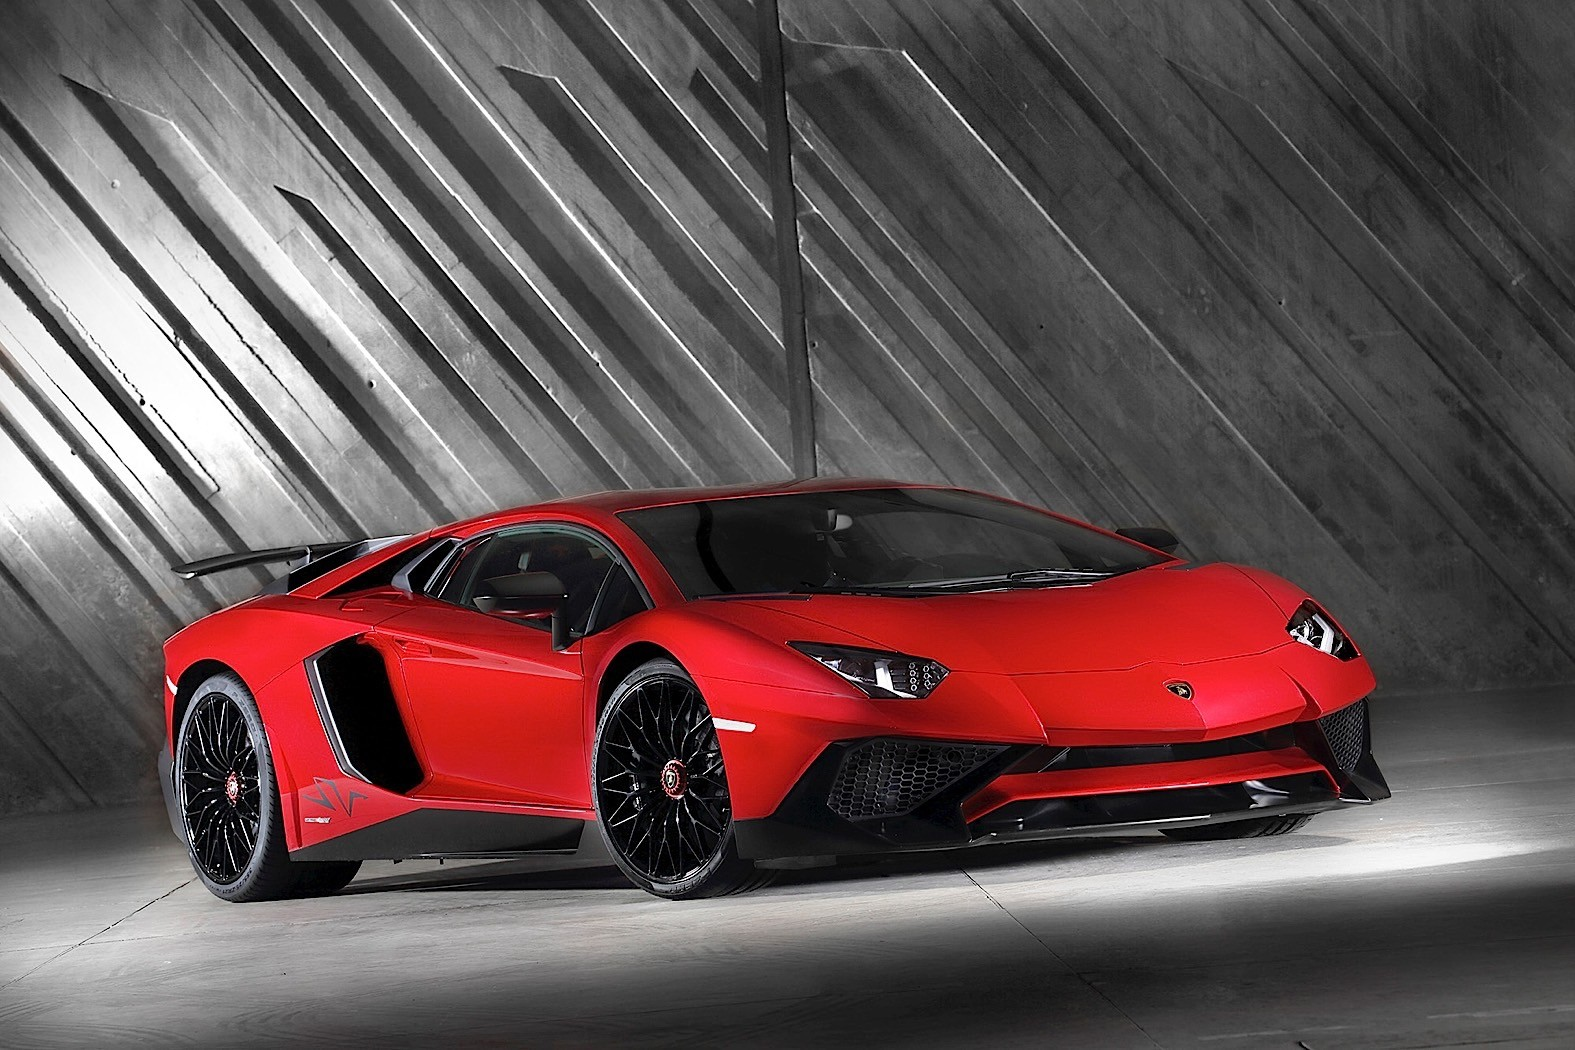 2017 lamborghini aventador lp 750 4 superveloce review. Black Bedroom Furniture Sets. Home Design Ideas